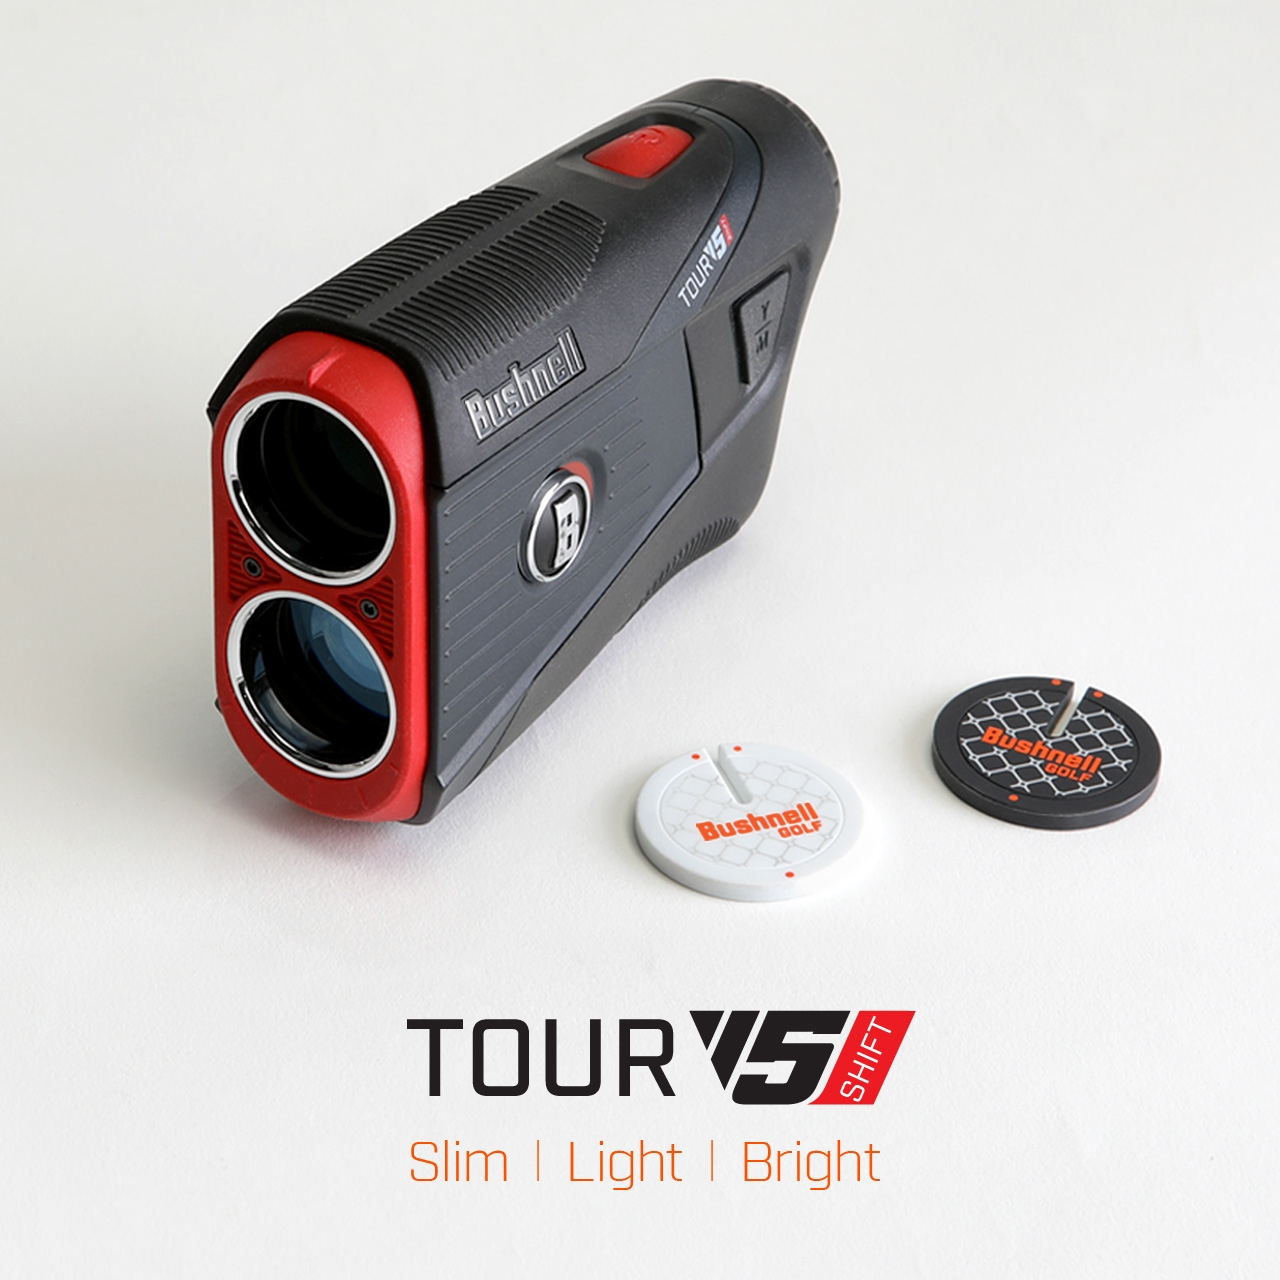 TOUR V5 SLIM (SHIFT) 이미지 1